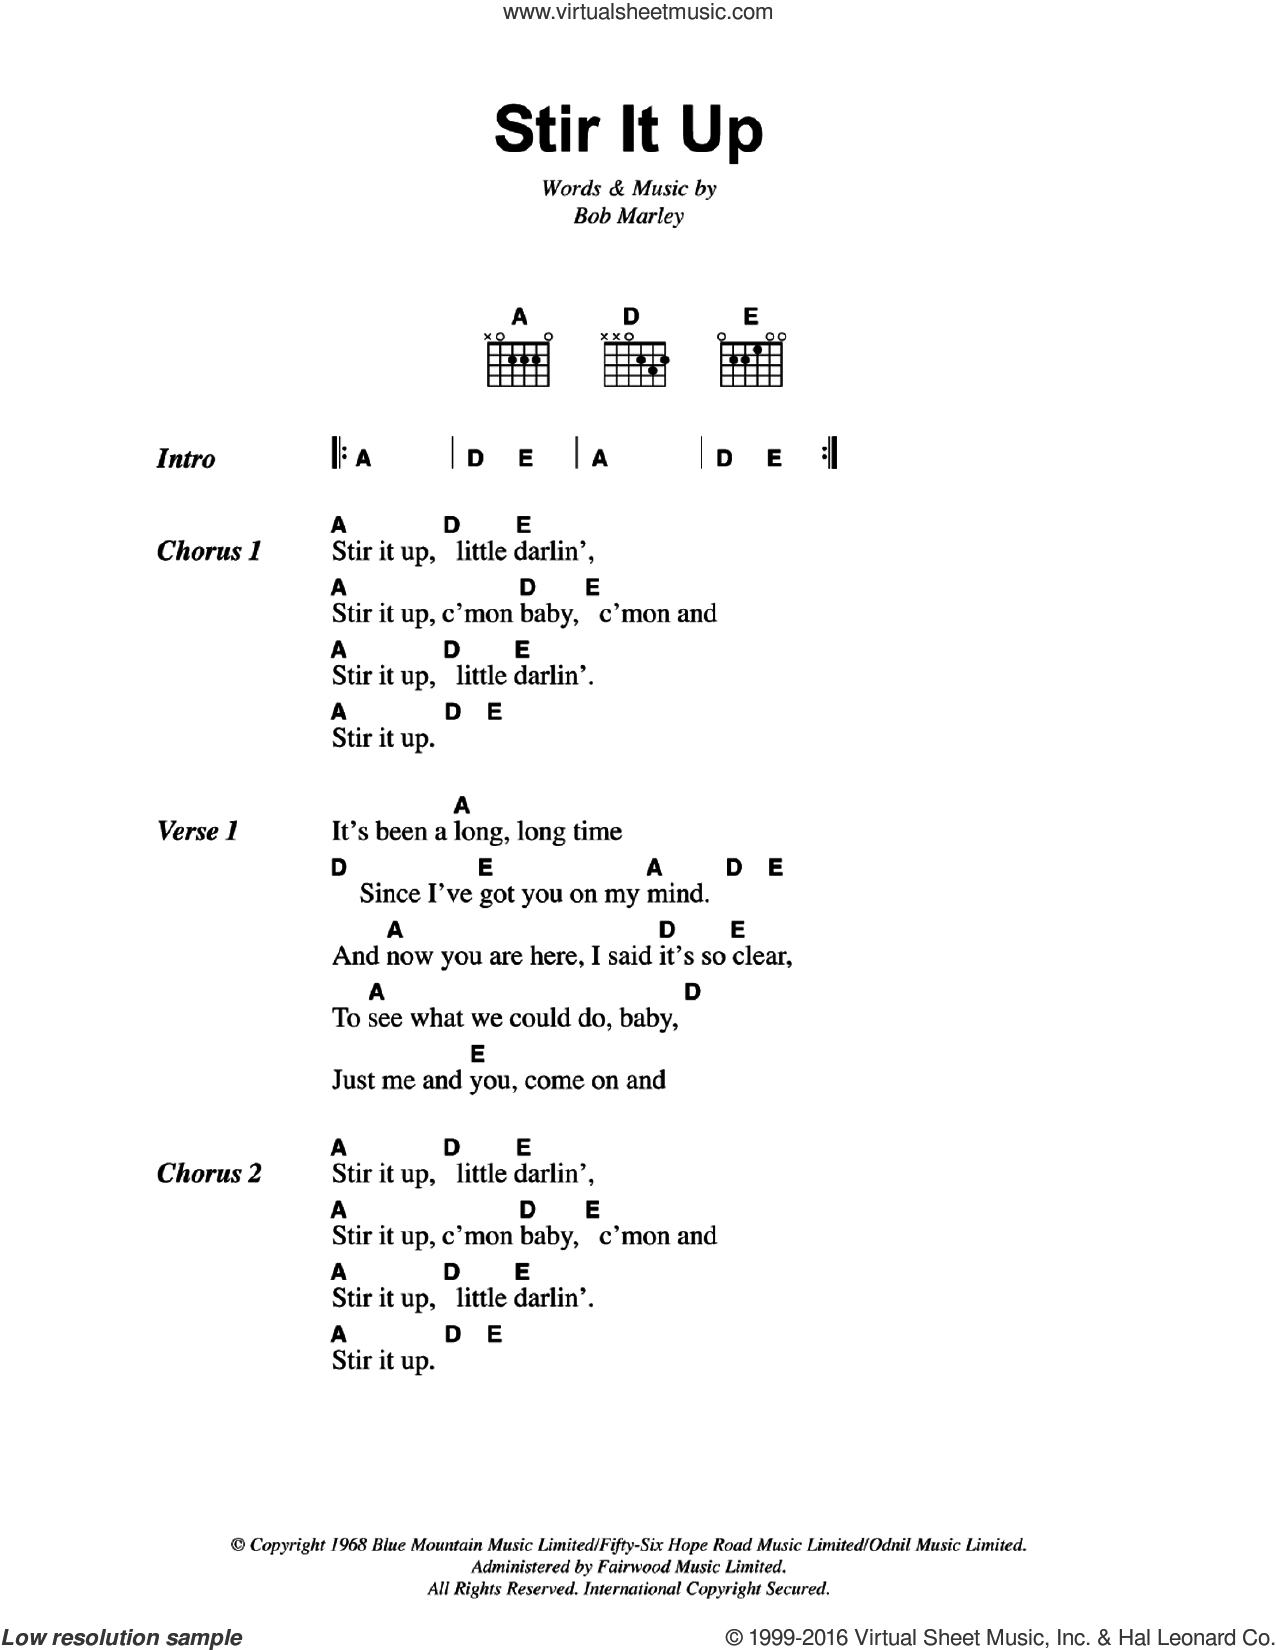 Stir It Up sheet music for guitar (chords) by Bob Marley. Score Image Preview.